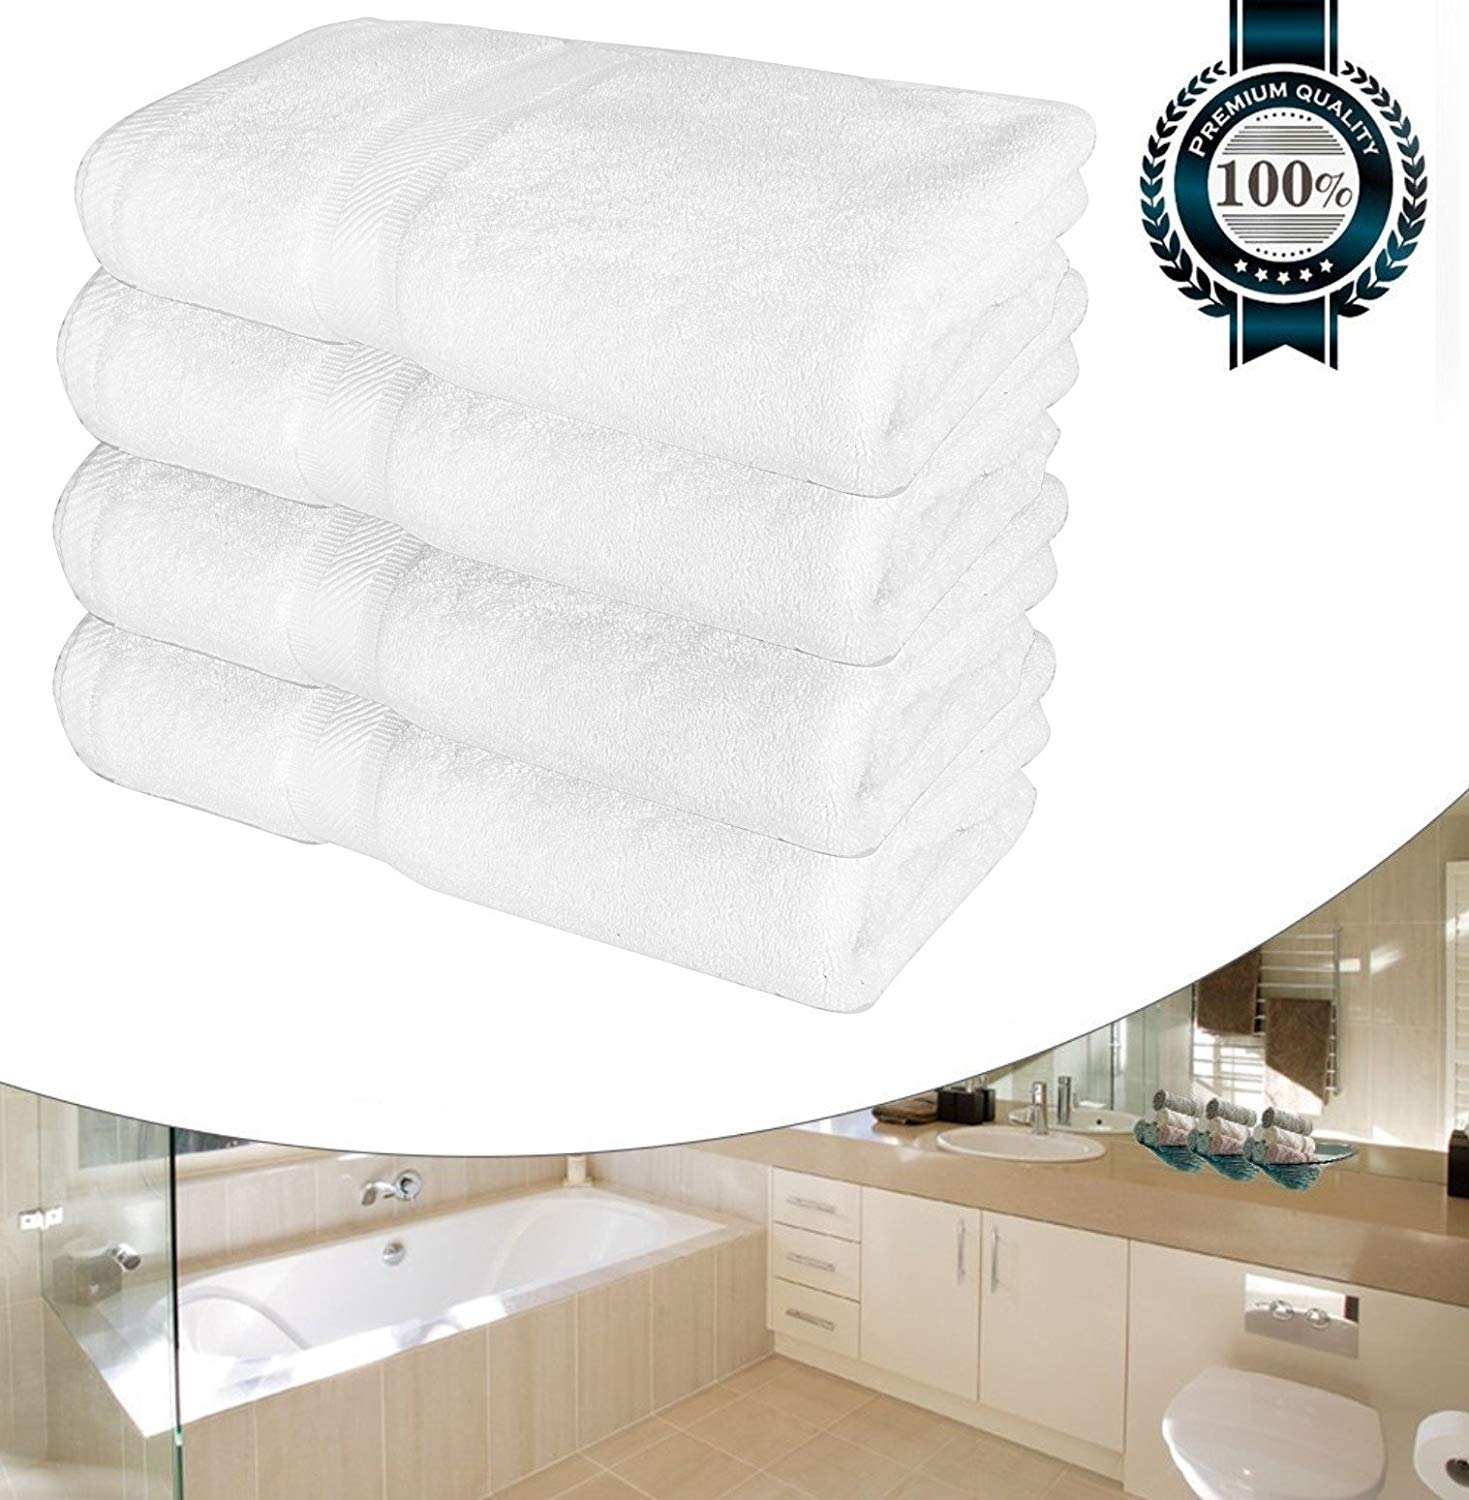 CASA COPENHAGEN Luxury White Bath Towels for Bathroom-Hotel-Spa-Kitchen-Set - Circlet Egyptian Cotton - Highly Absorbent Hotel Quality Towels - 27x54 Inch - Bulk Set of 4